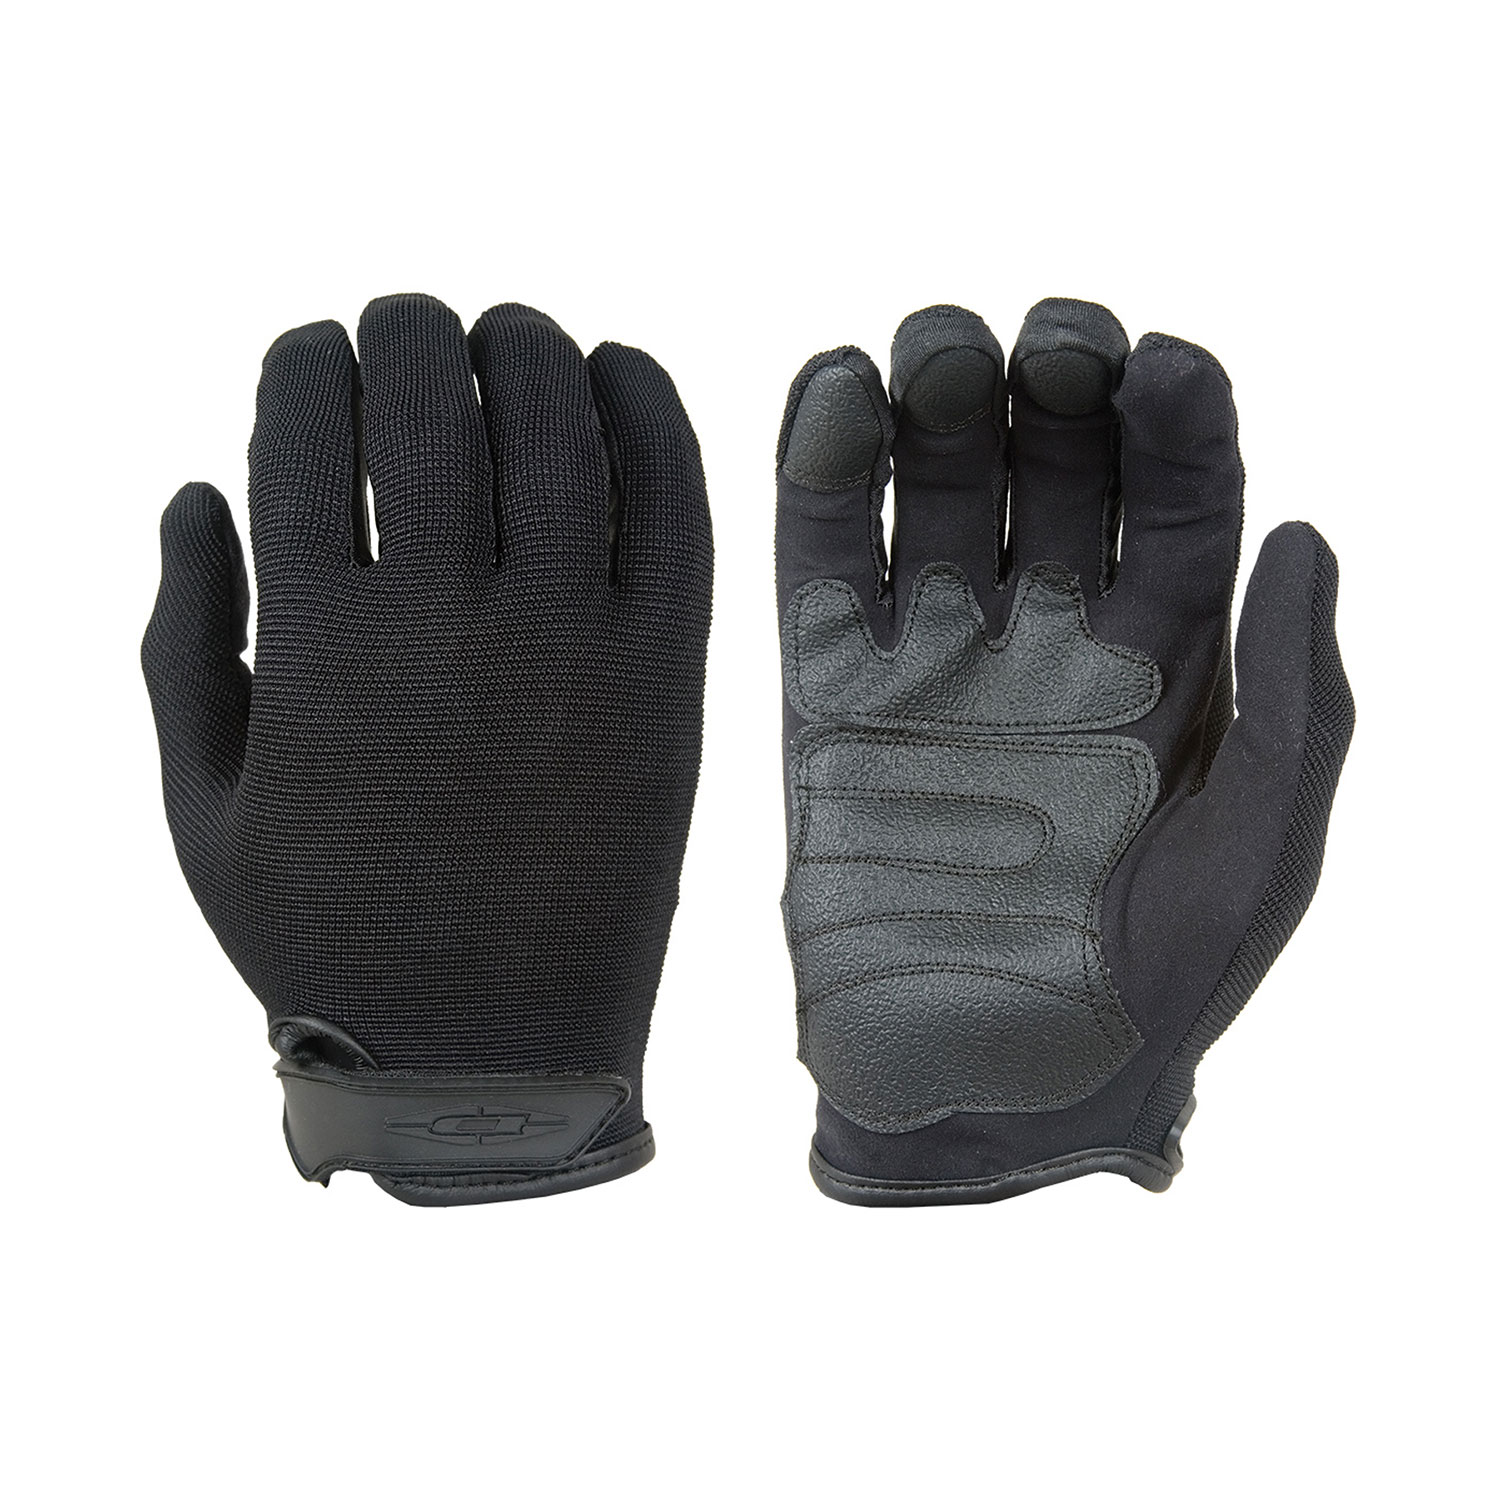 Damascus Nexstar 1 Lightweight Duty Gloves